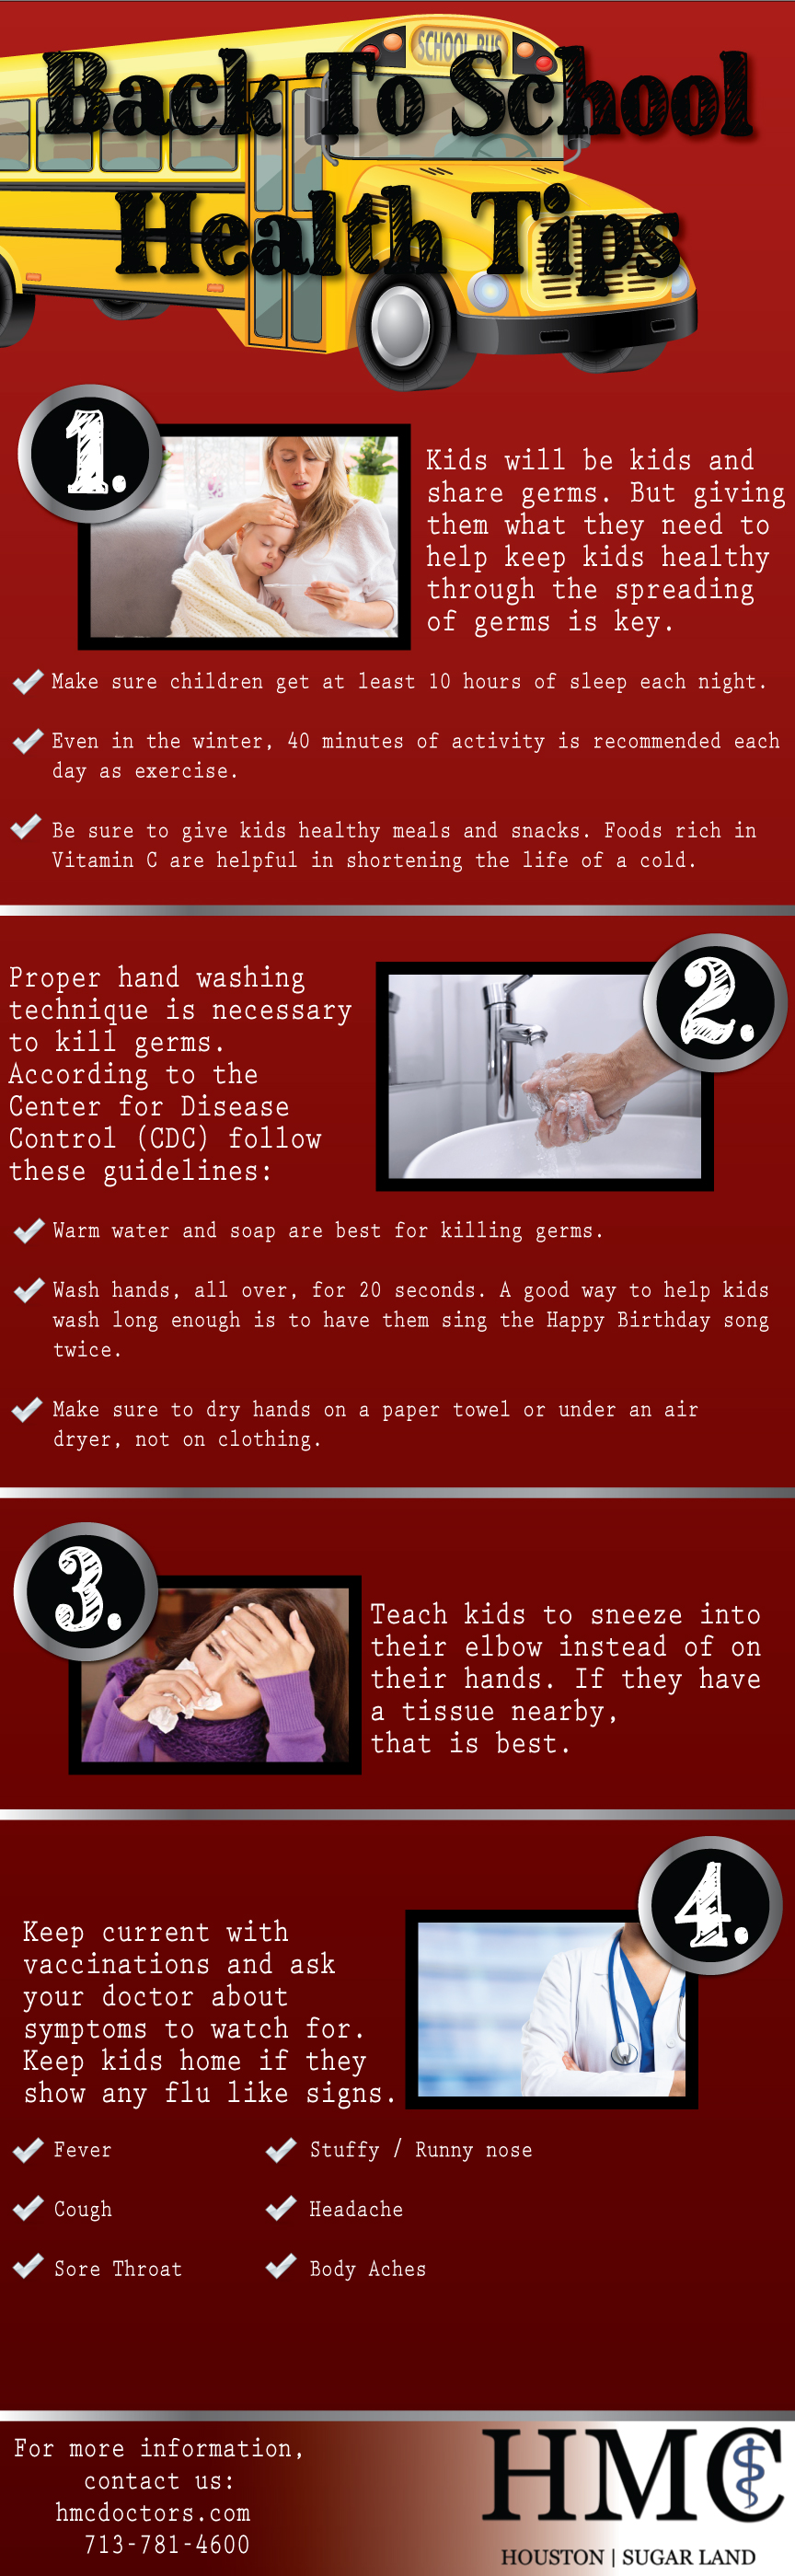 HMCA-Back-To-School-InfoG